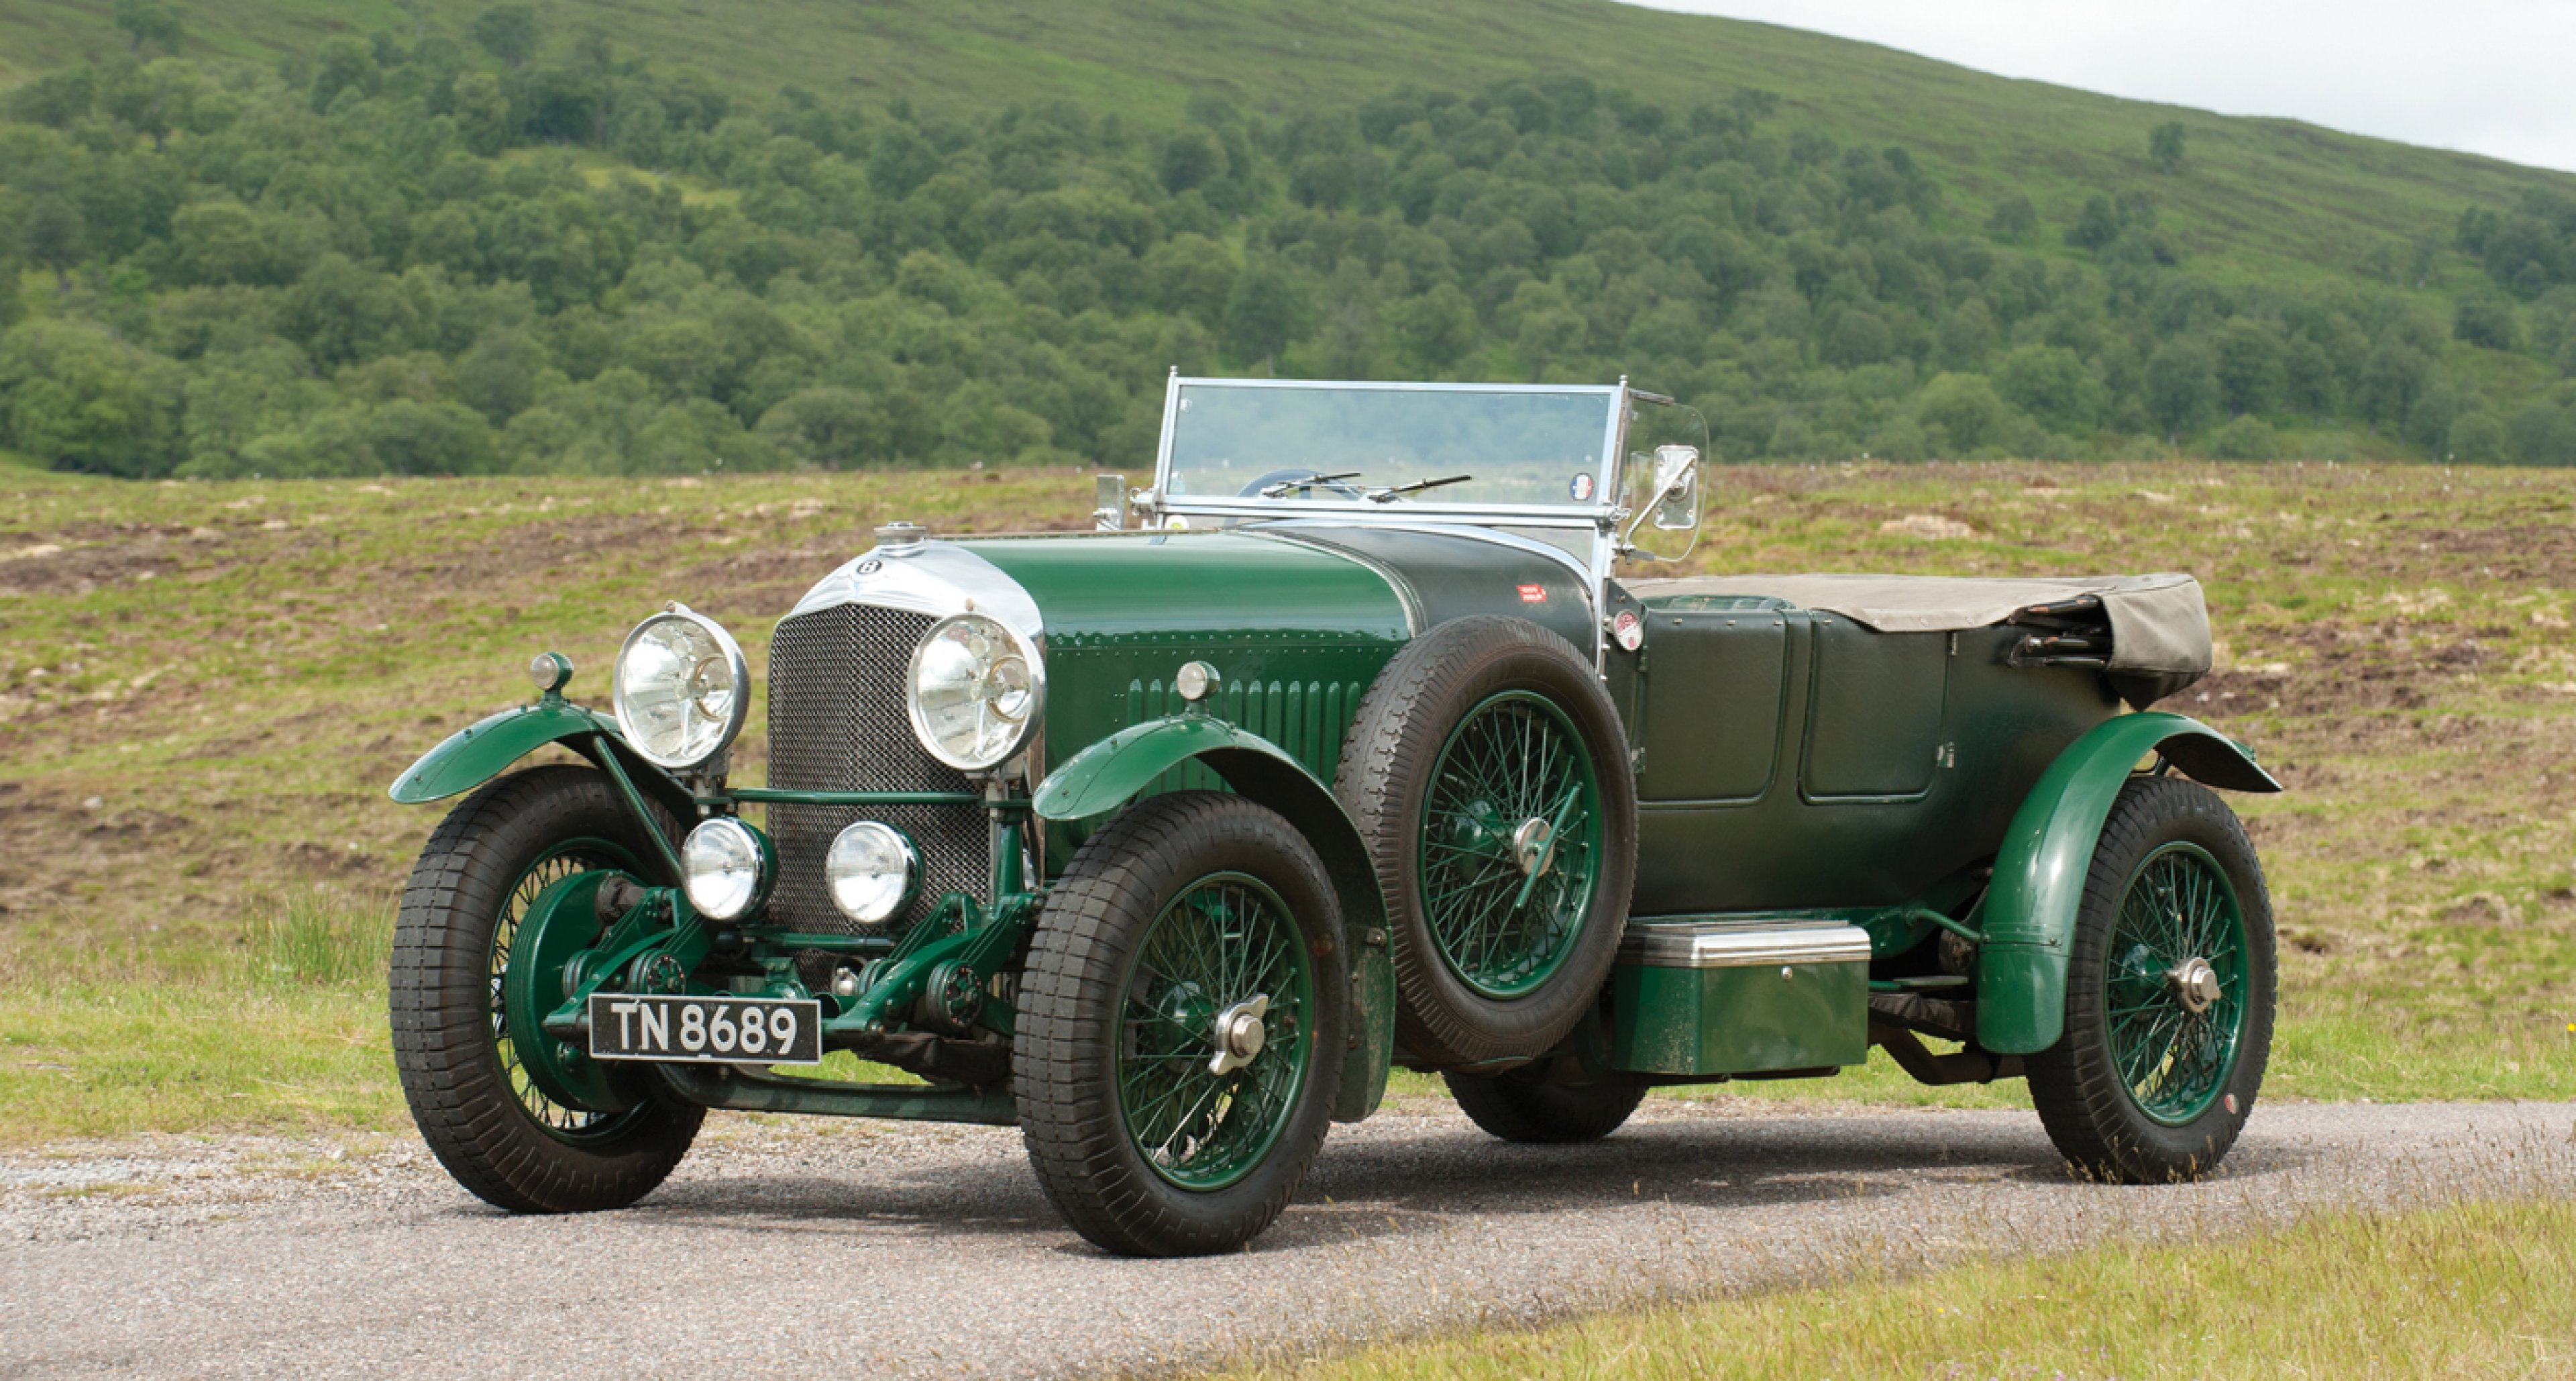 1929 Bentley 4½-Litre Open Tourer, estimate GBP 525,000 - 600,000.